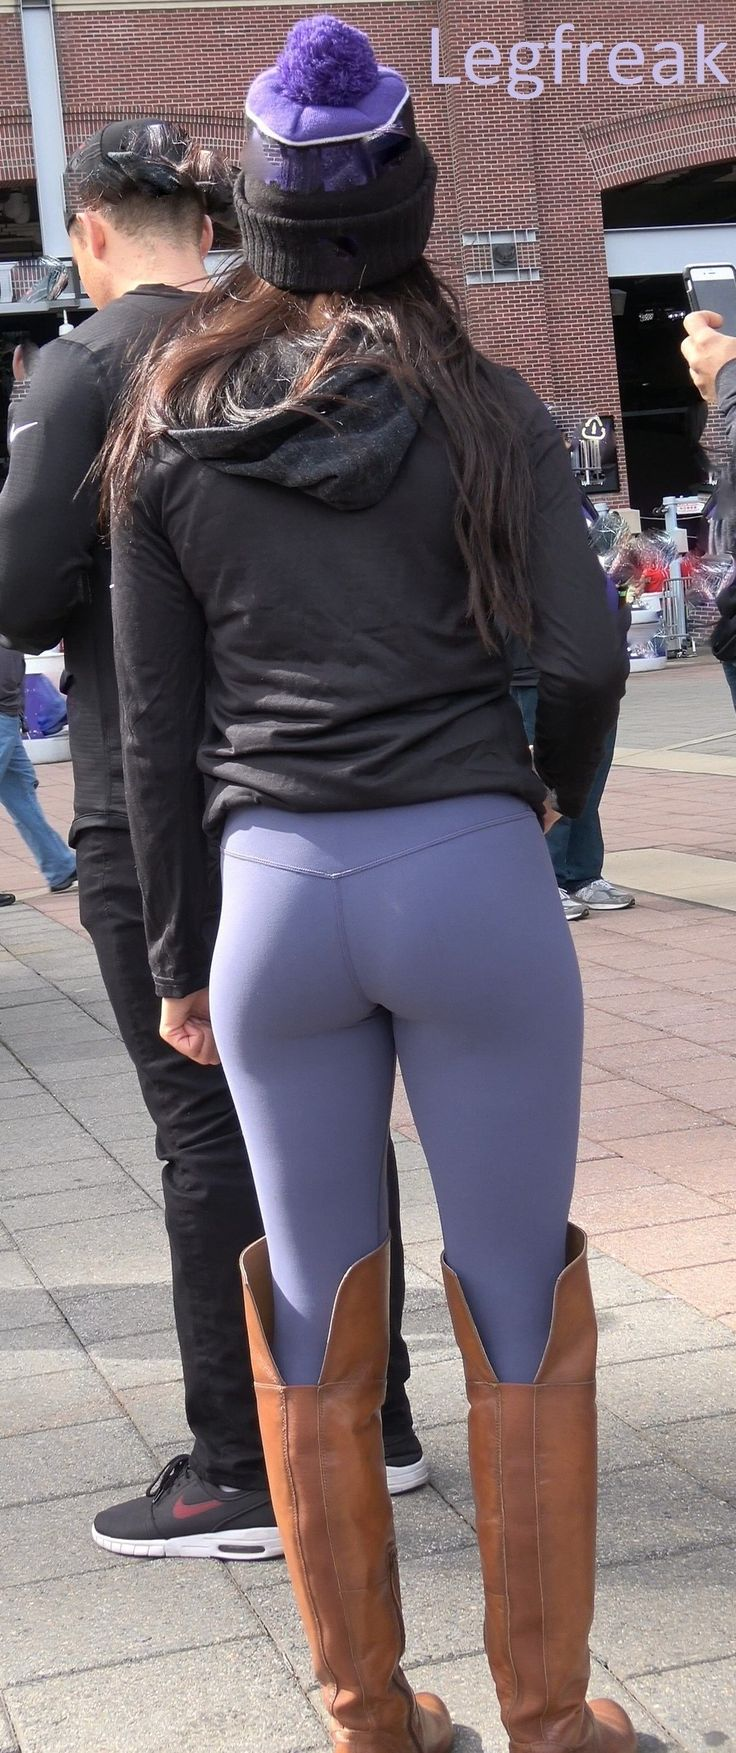 243 Best Images About Candid Spandex On Pinterest